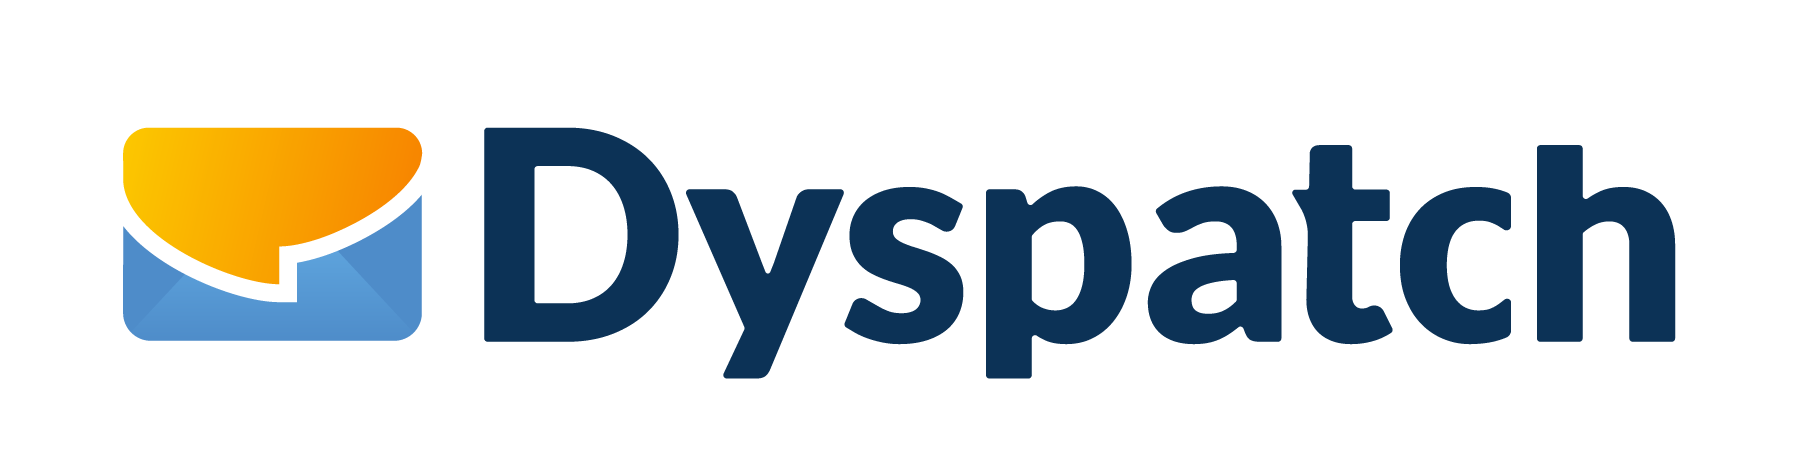 Dyspatch-Logo-Dark-1800.png